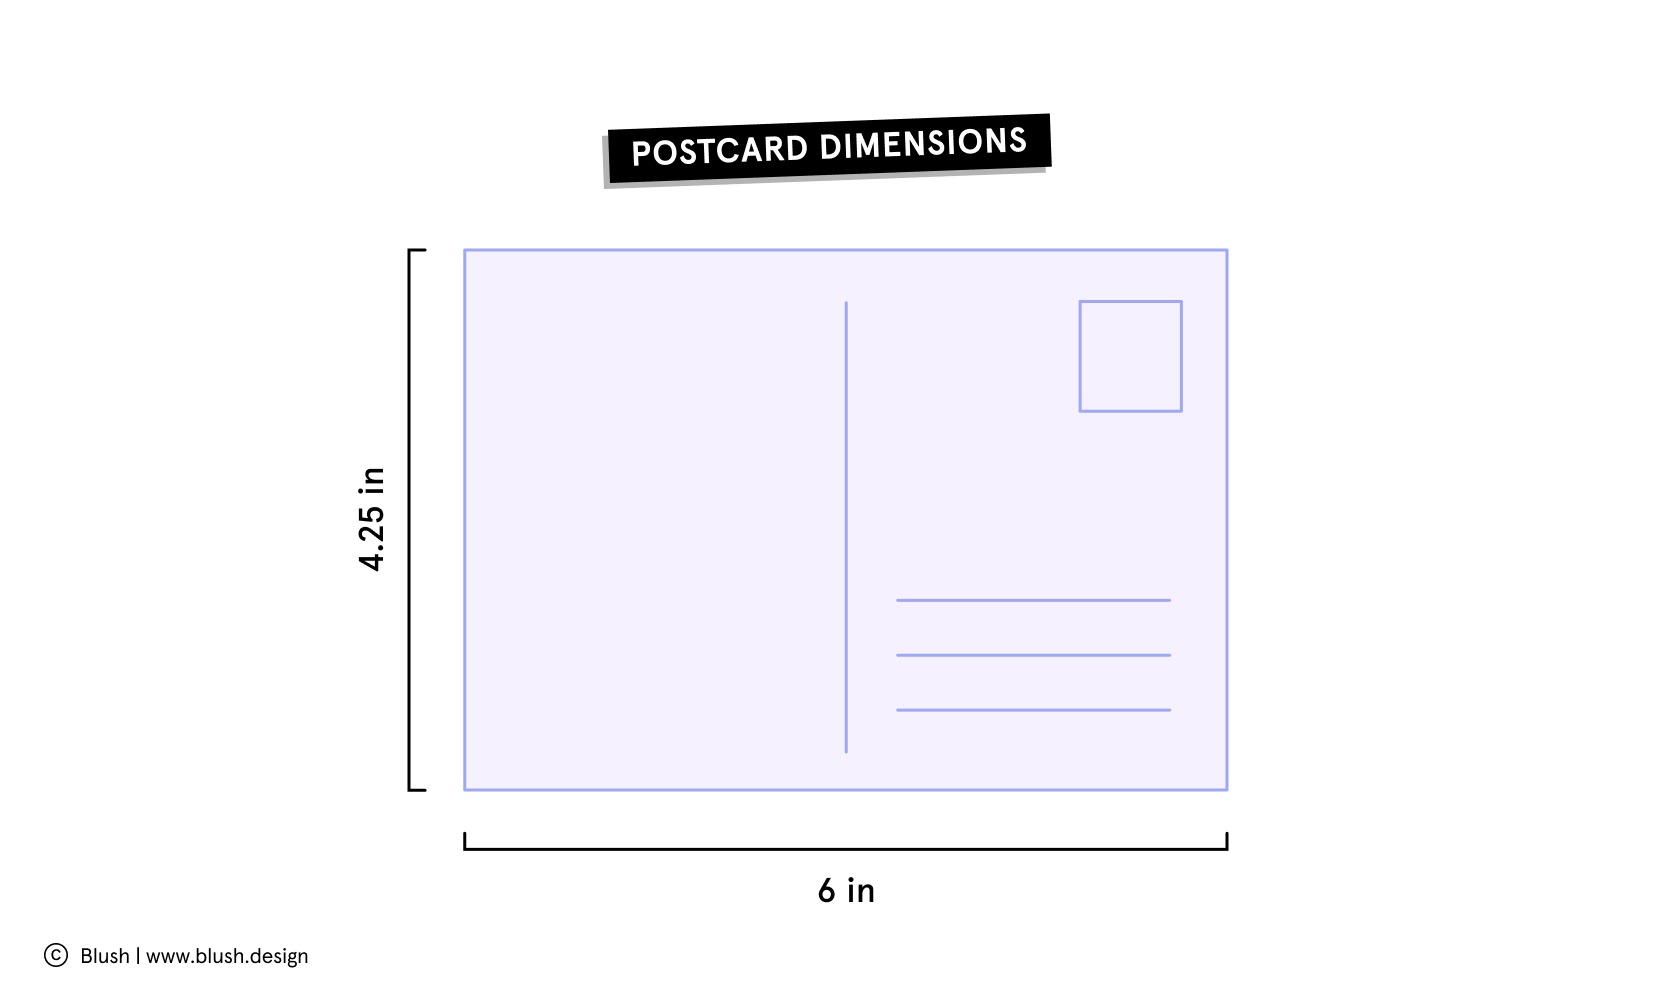 Illustration of postcard dimensions